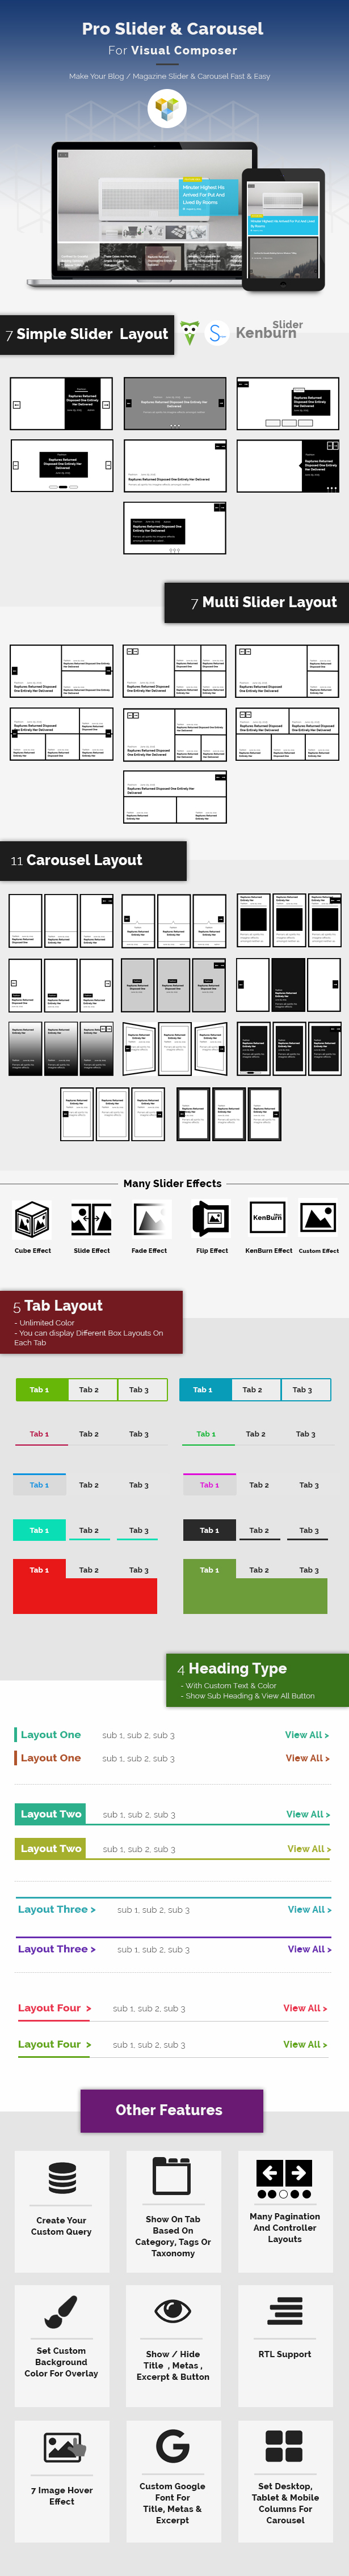 Pro Slider & Carousel Layout for WPBakery Page Builder : Amazingly Display Post & Custom Post - 2